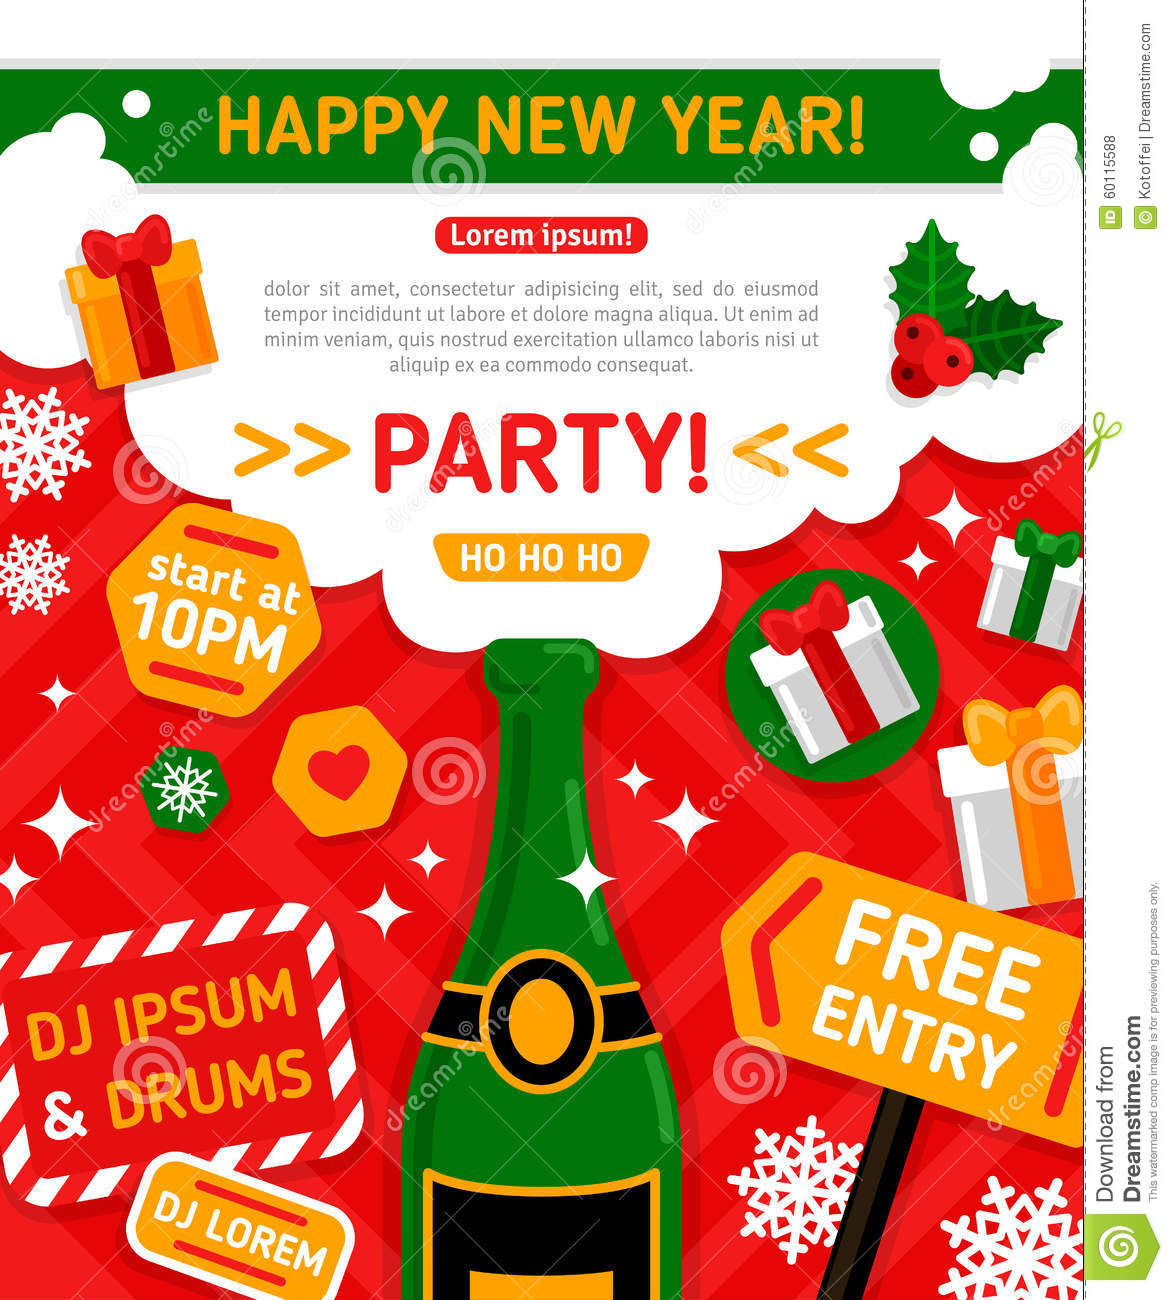 Merry Christmas And Happy New Year Party Stock Photo - Image of foam ...